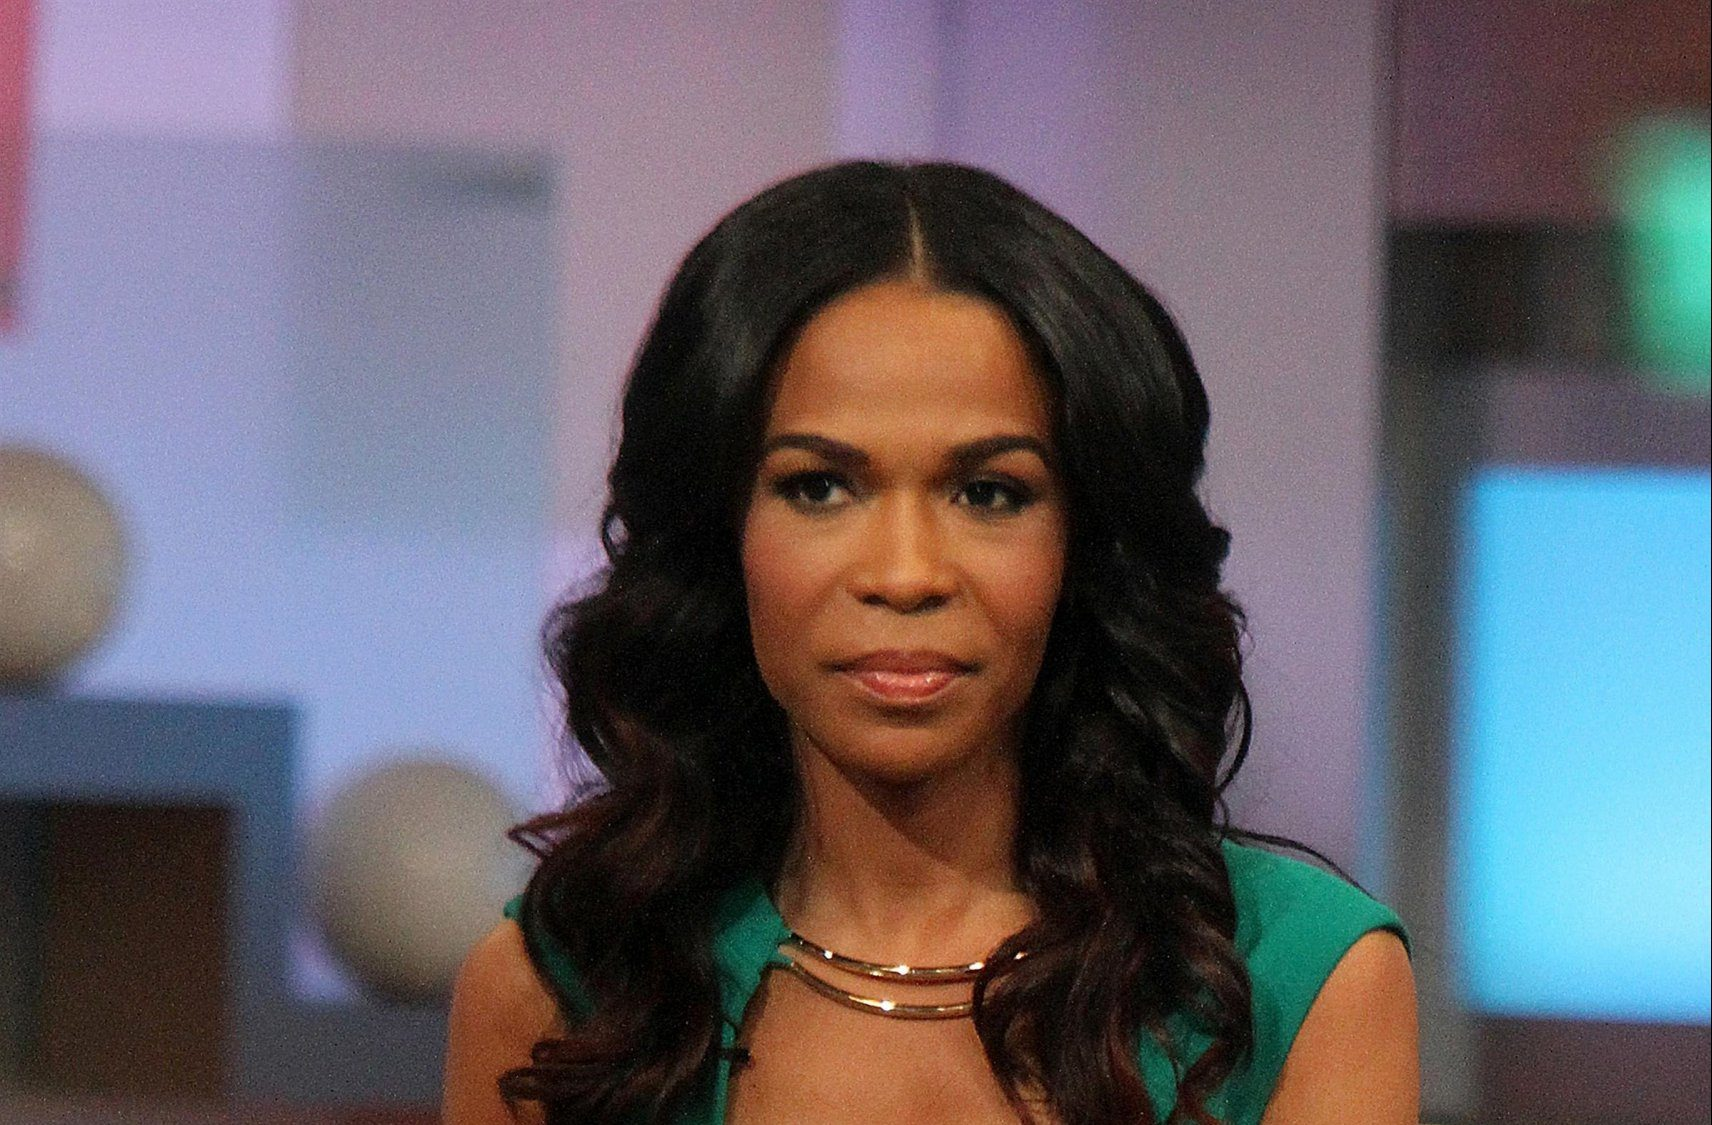 Michelle Williams is doing 'better' after seeking help for depression